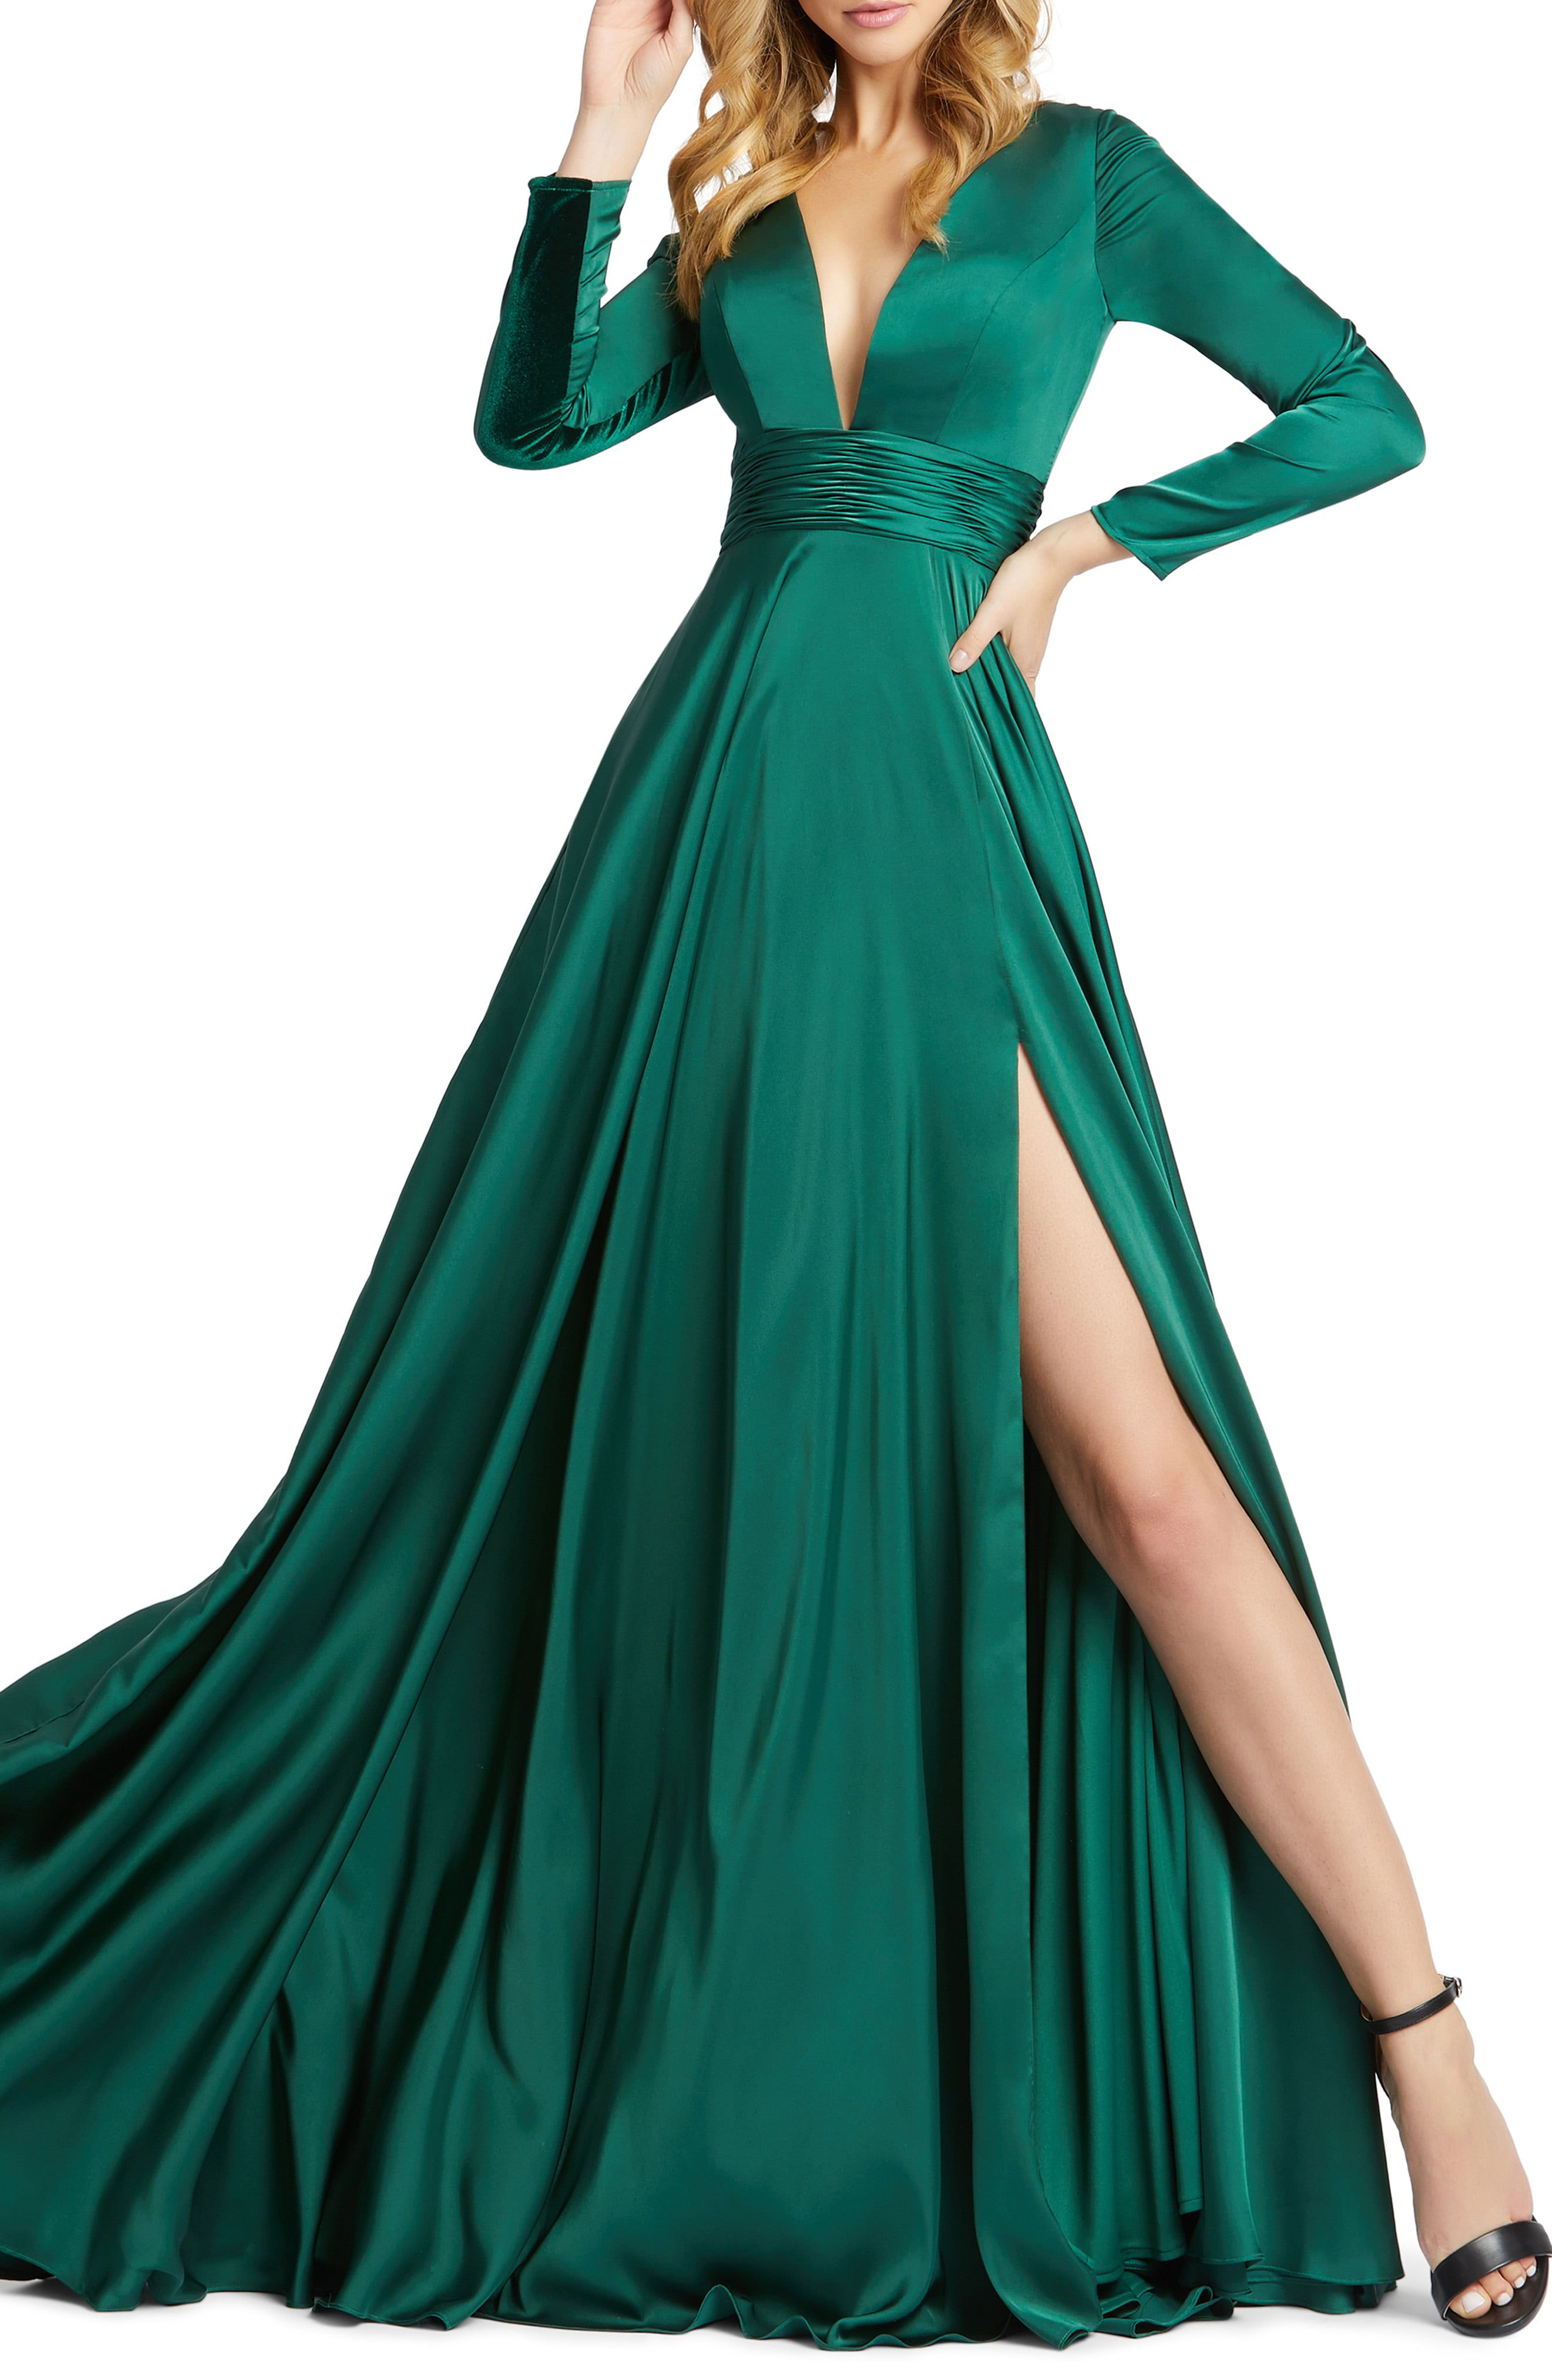 Ieena For Mac Duggal Long Sleeve Satin A Line Gown Nordstrom In 2021 Prom Dresses Long With Sleeves Long Sleeve Ball Gowns Long Sleeve Dress Formal [ 4048 x 2640 Pixel ]